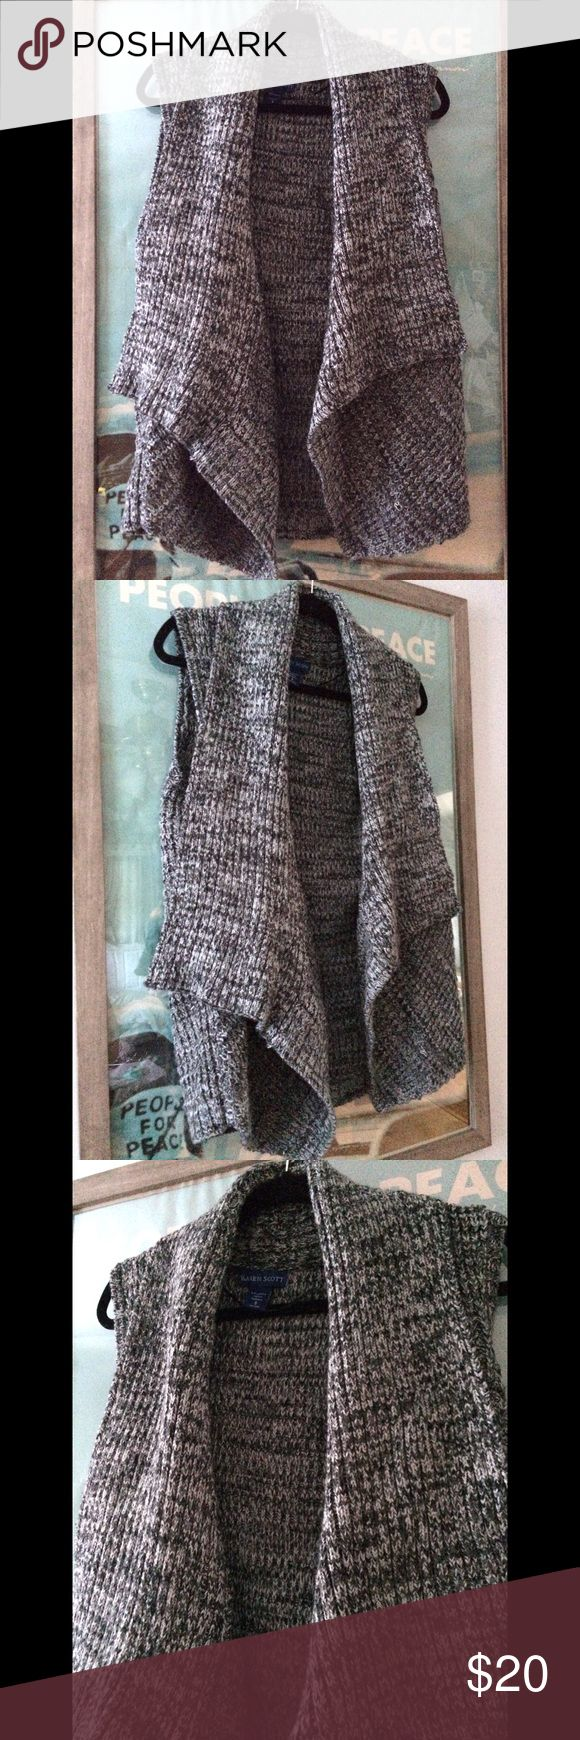 Karen Scott Sweater Vest New without tags. The color is a bluish gray hue. 20 inches across waist, 28 inch length. Perfect for winter layering. Make an offer or bundle to save. 🤗 Karen Scott Jackets & Coats Vests